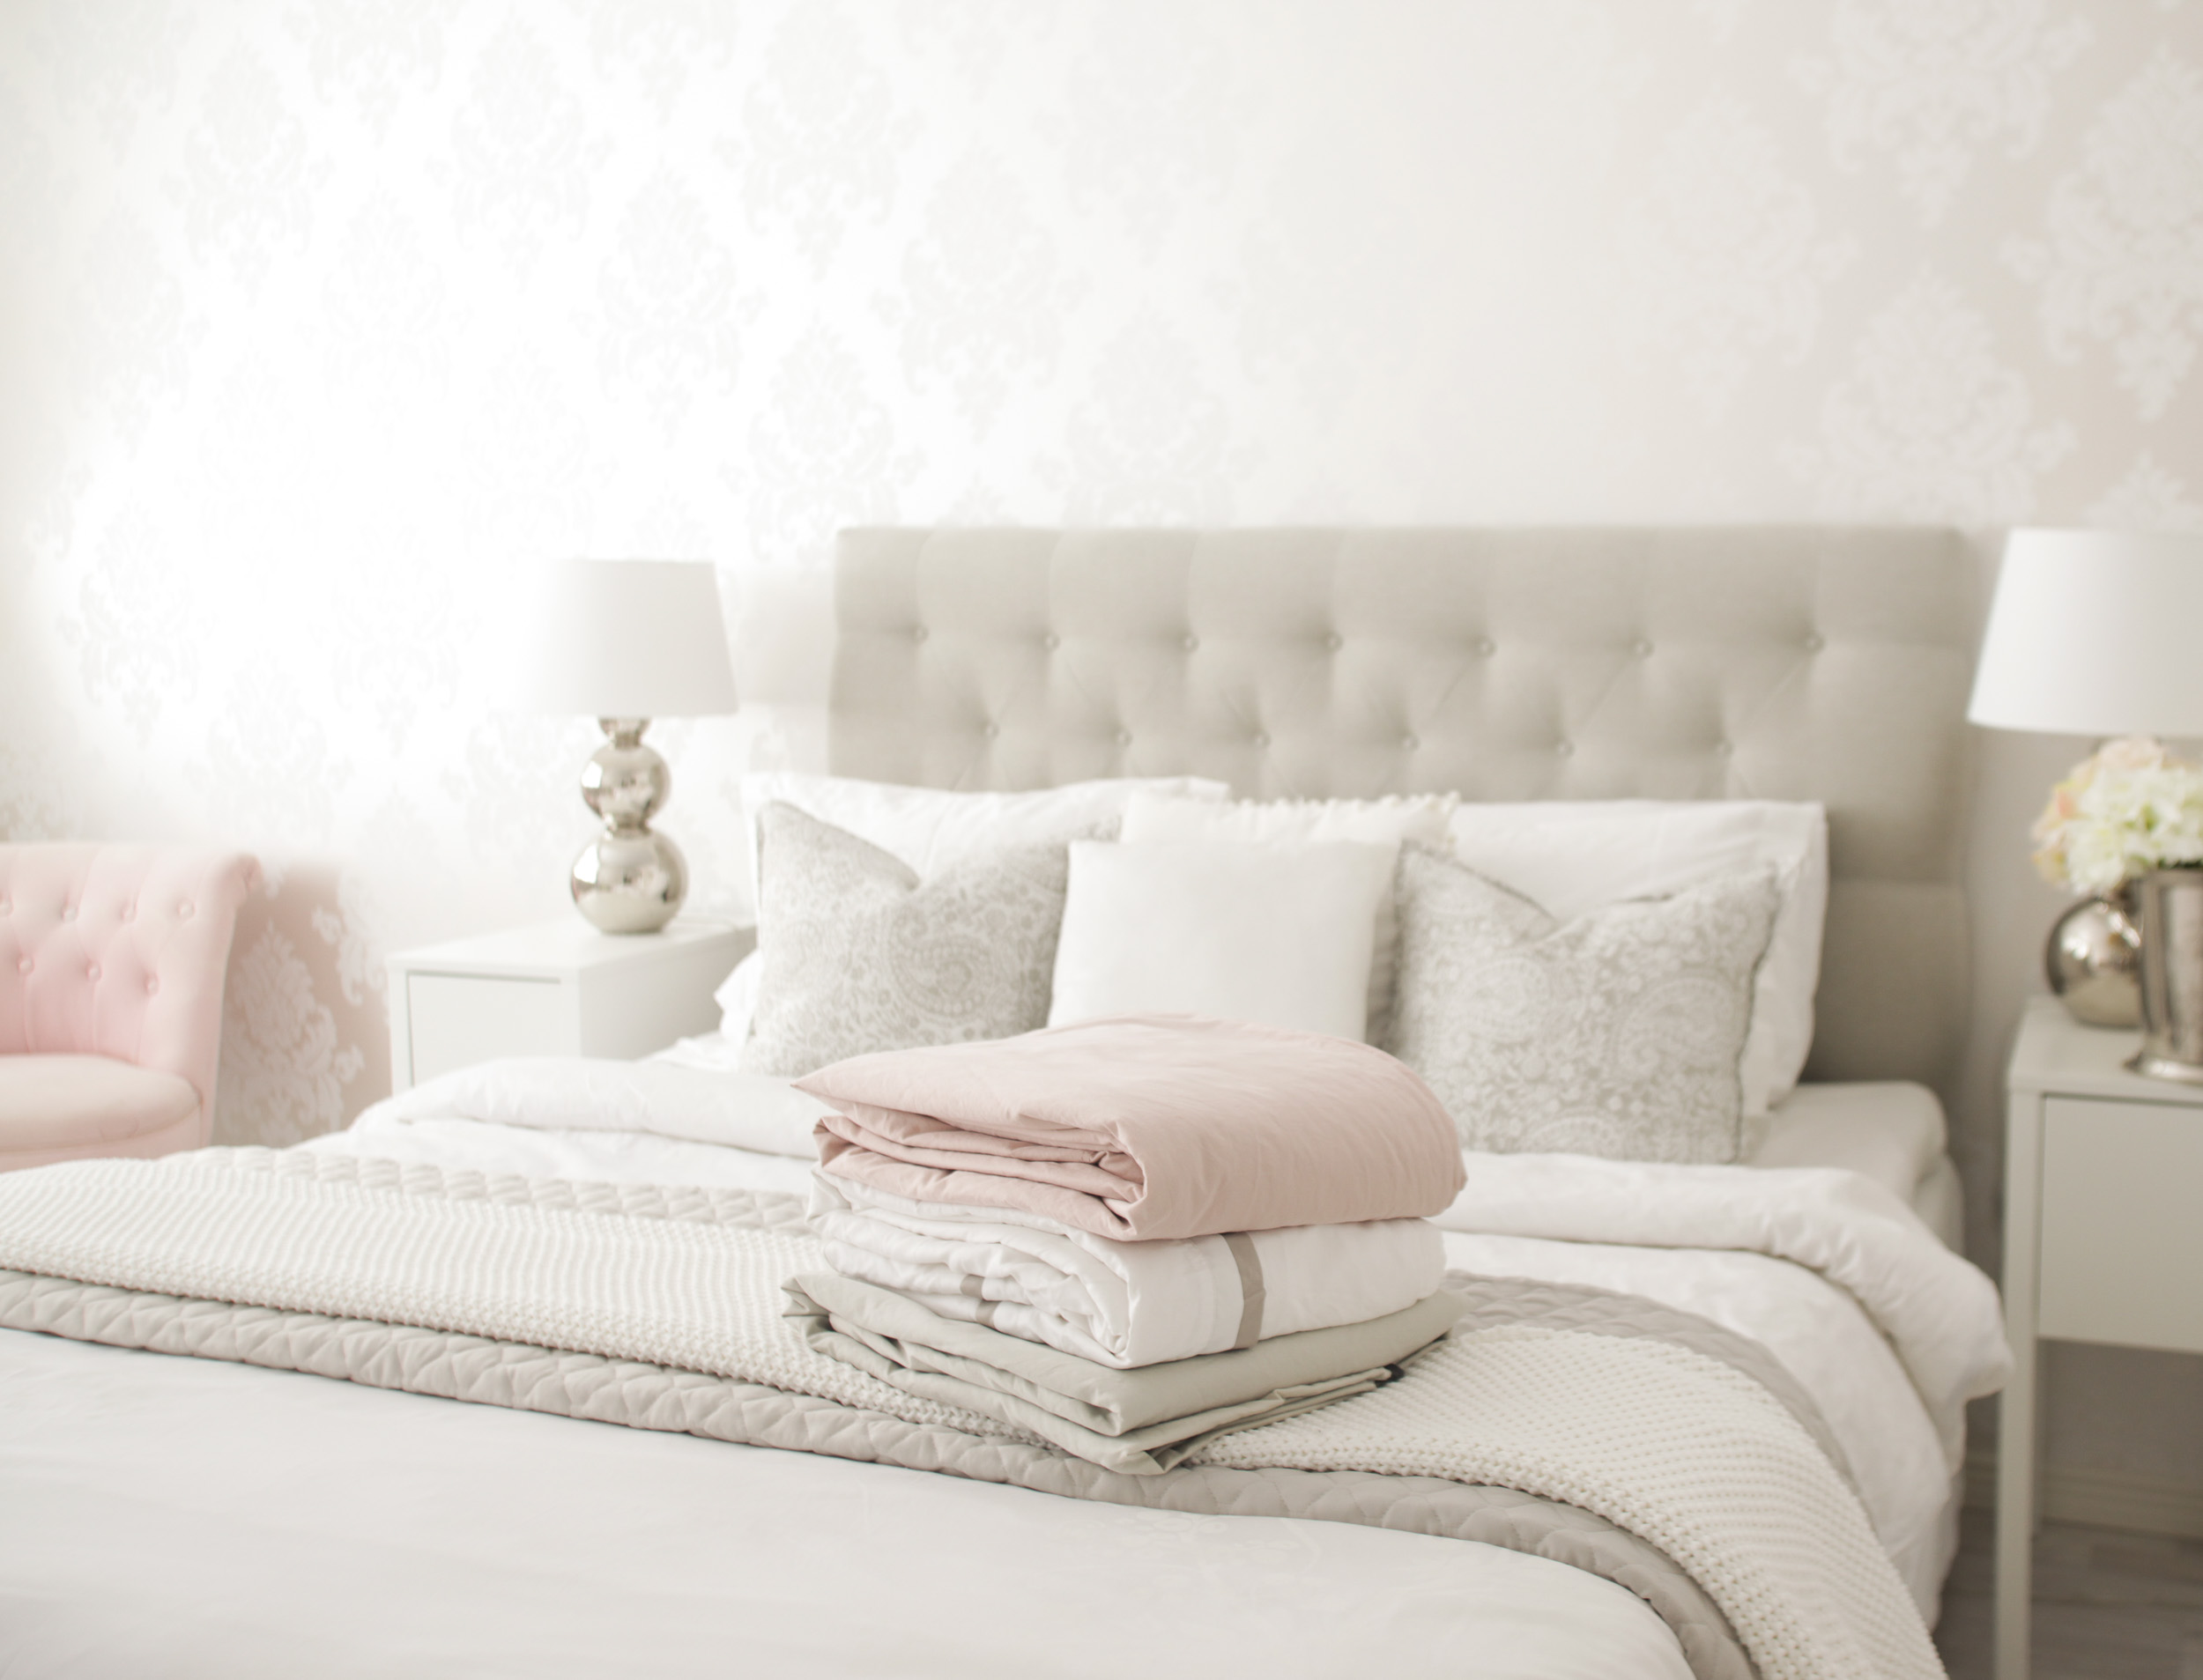 bed-4765